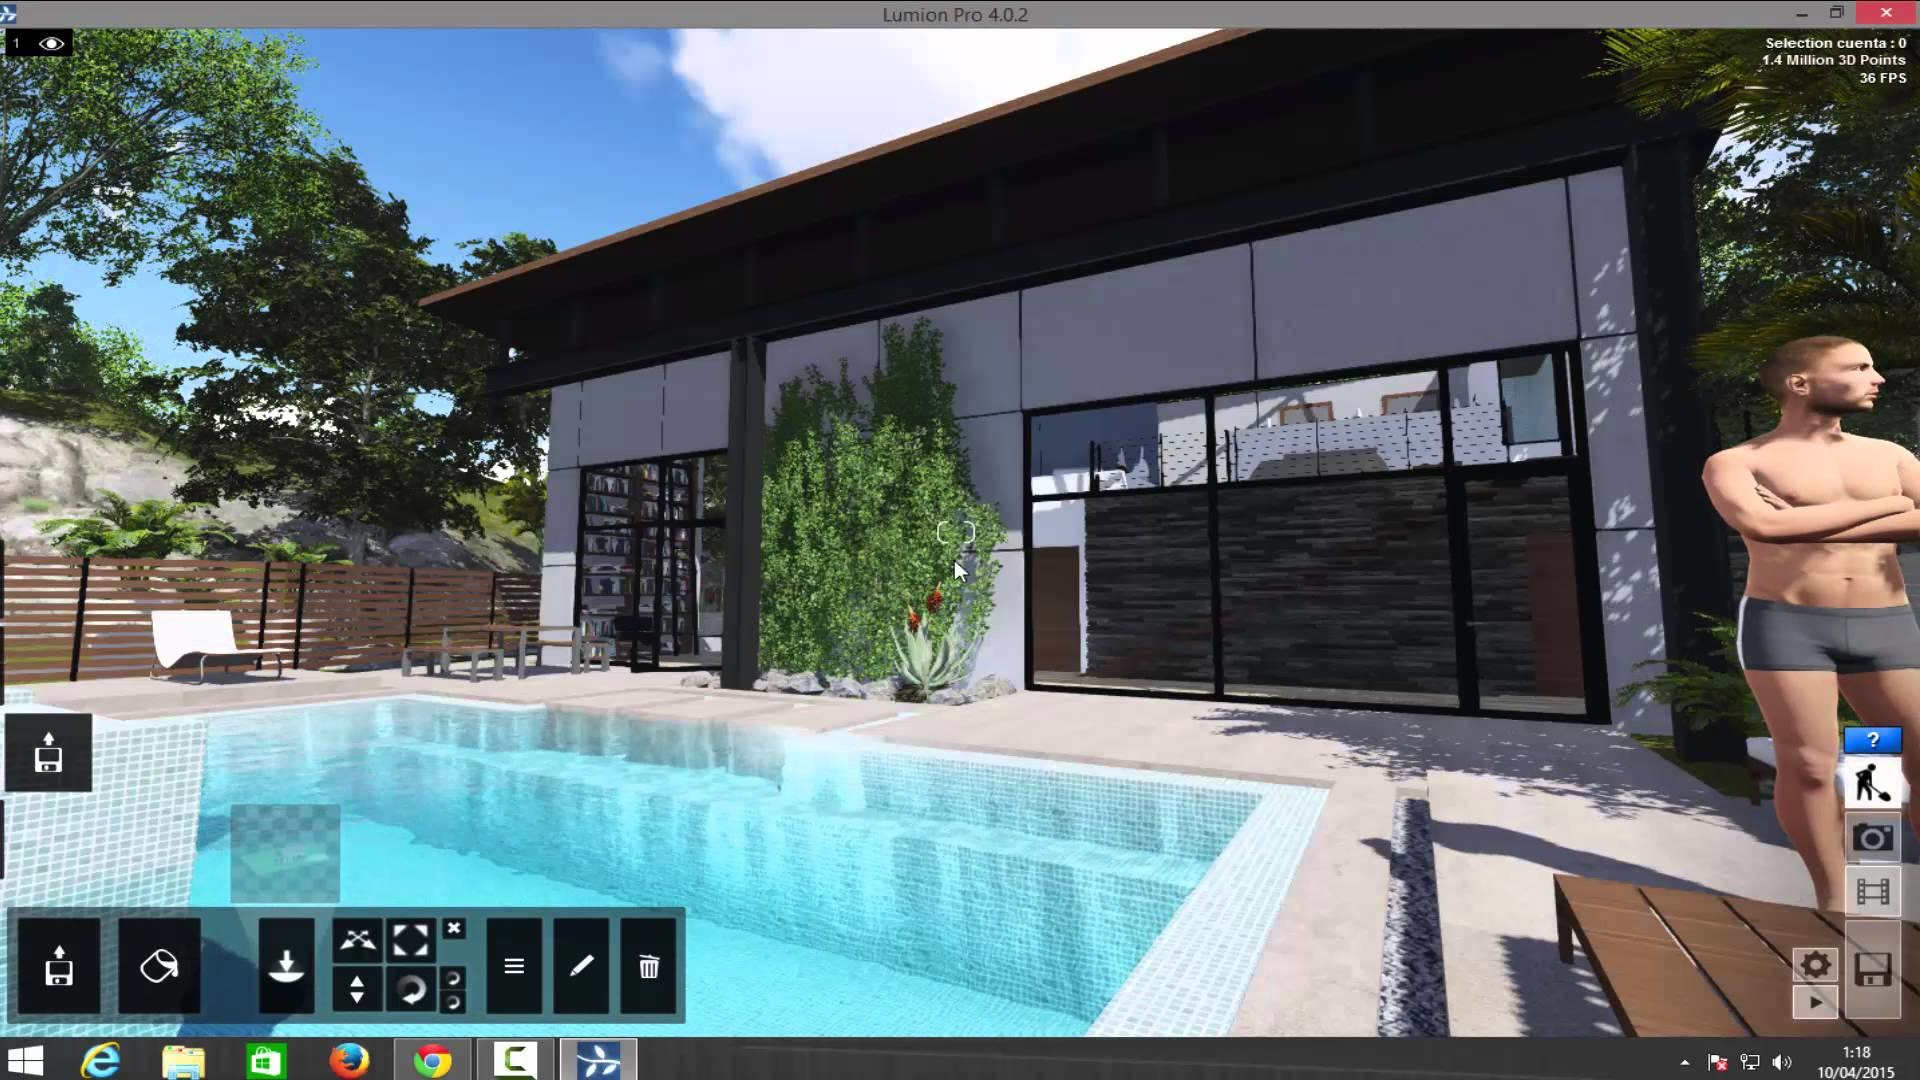 lumion for sketchup 2018 free download